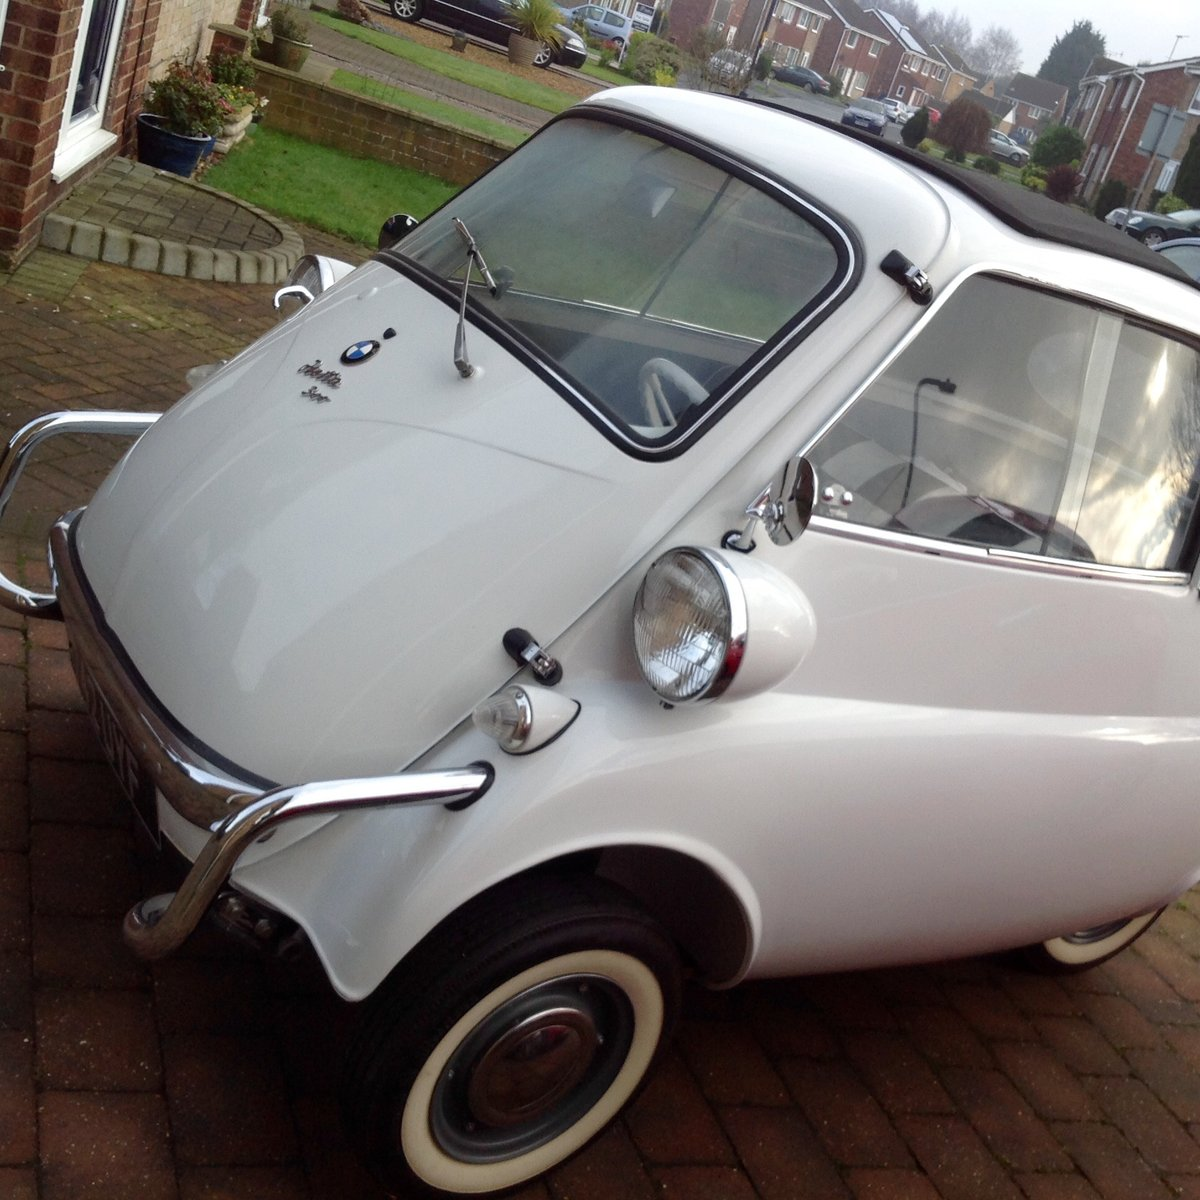 1957 Isetta Export Cabriolet For Sale | Car And Classic